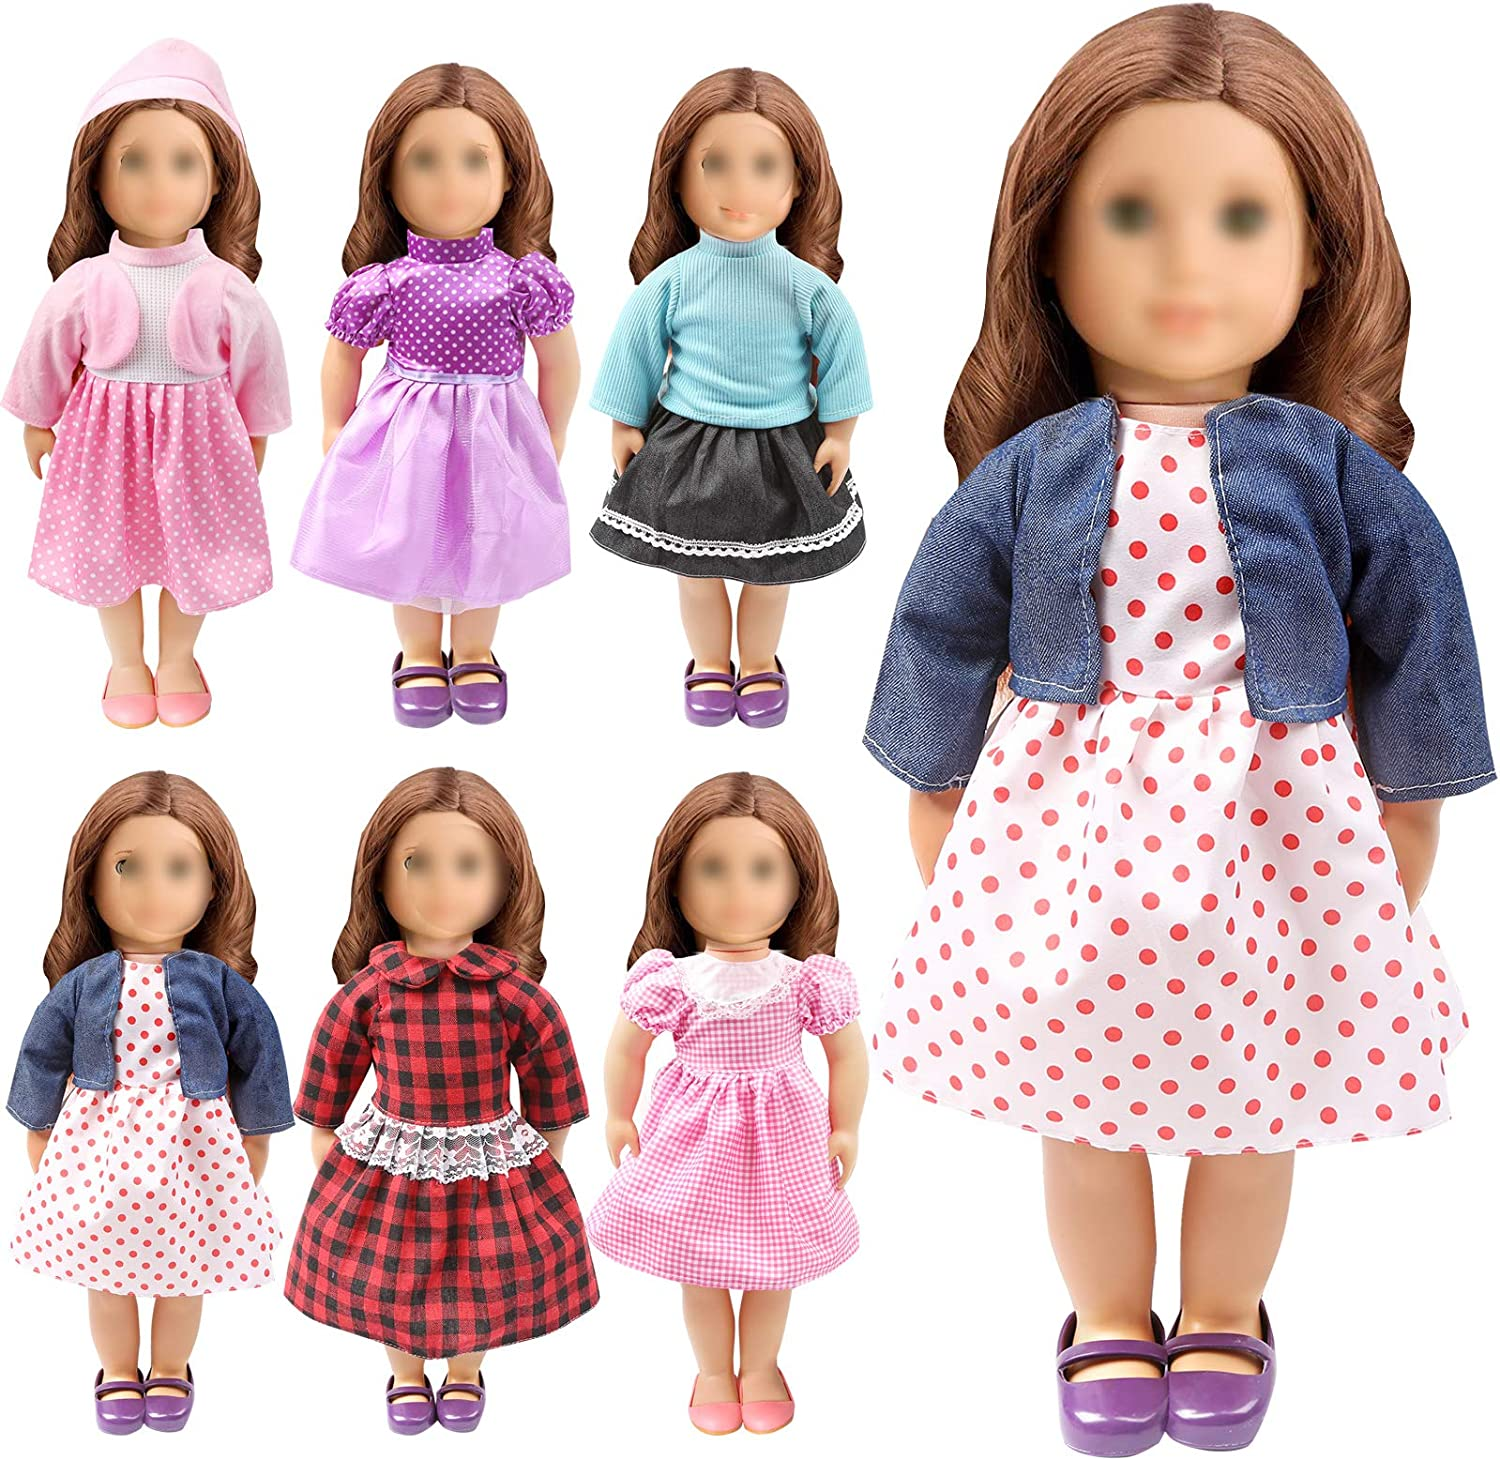 store OUFOTAT 18 Inch Doll Clothes - American In Girl Ranking TOP9 for